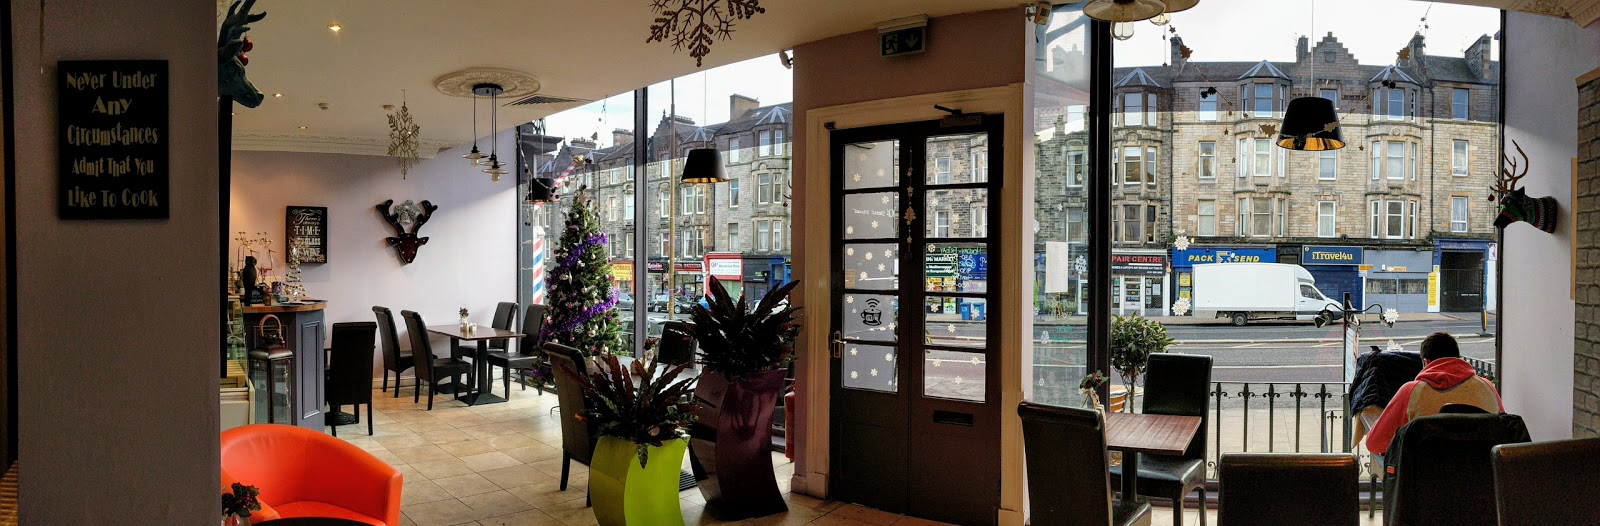 Owl&Deer Coffee House and Bistro: A Work-Friendly Place in Edinburgh